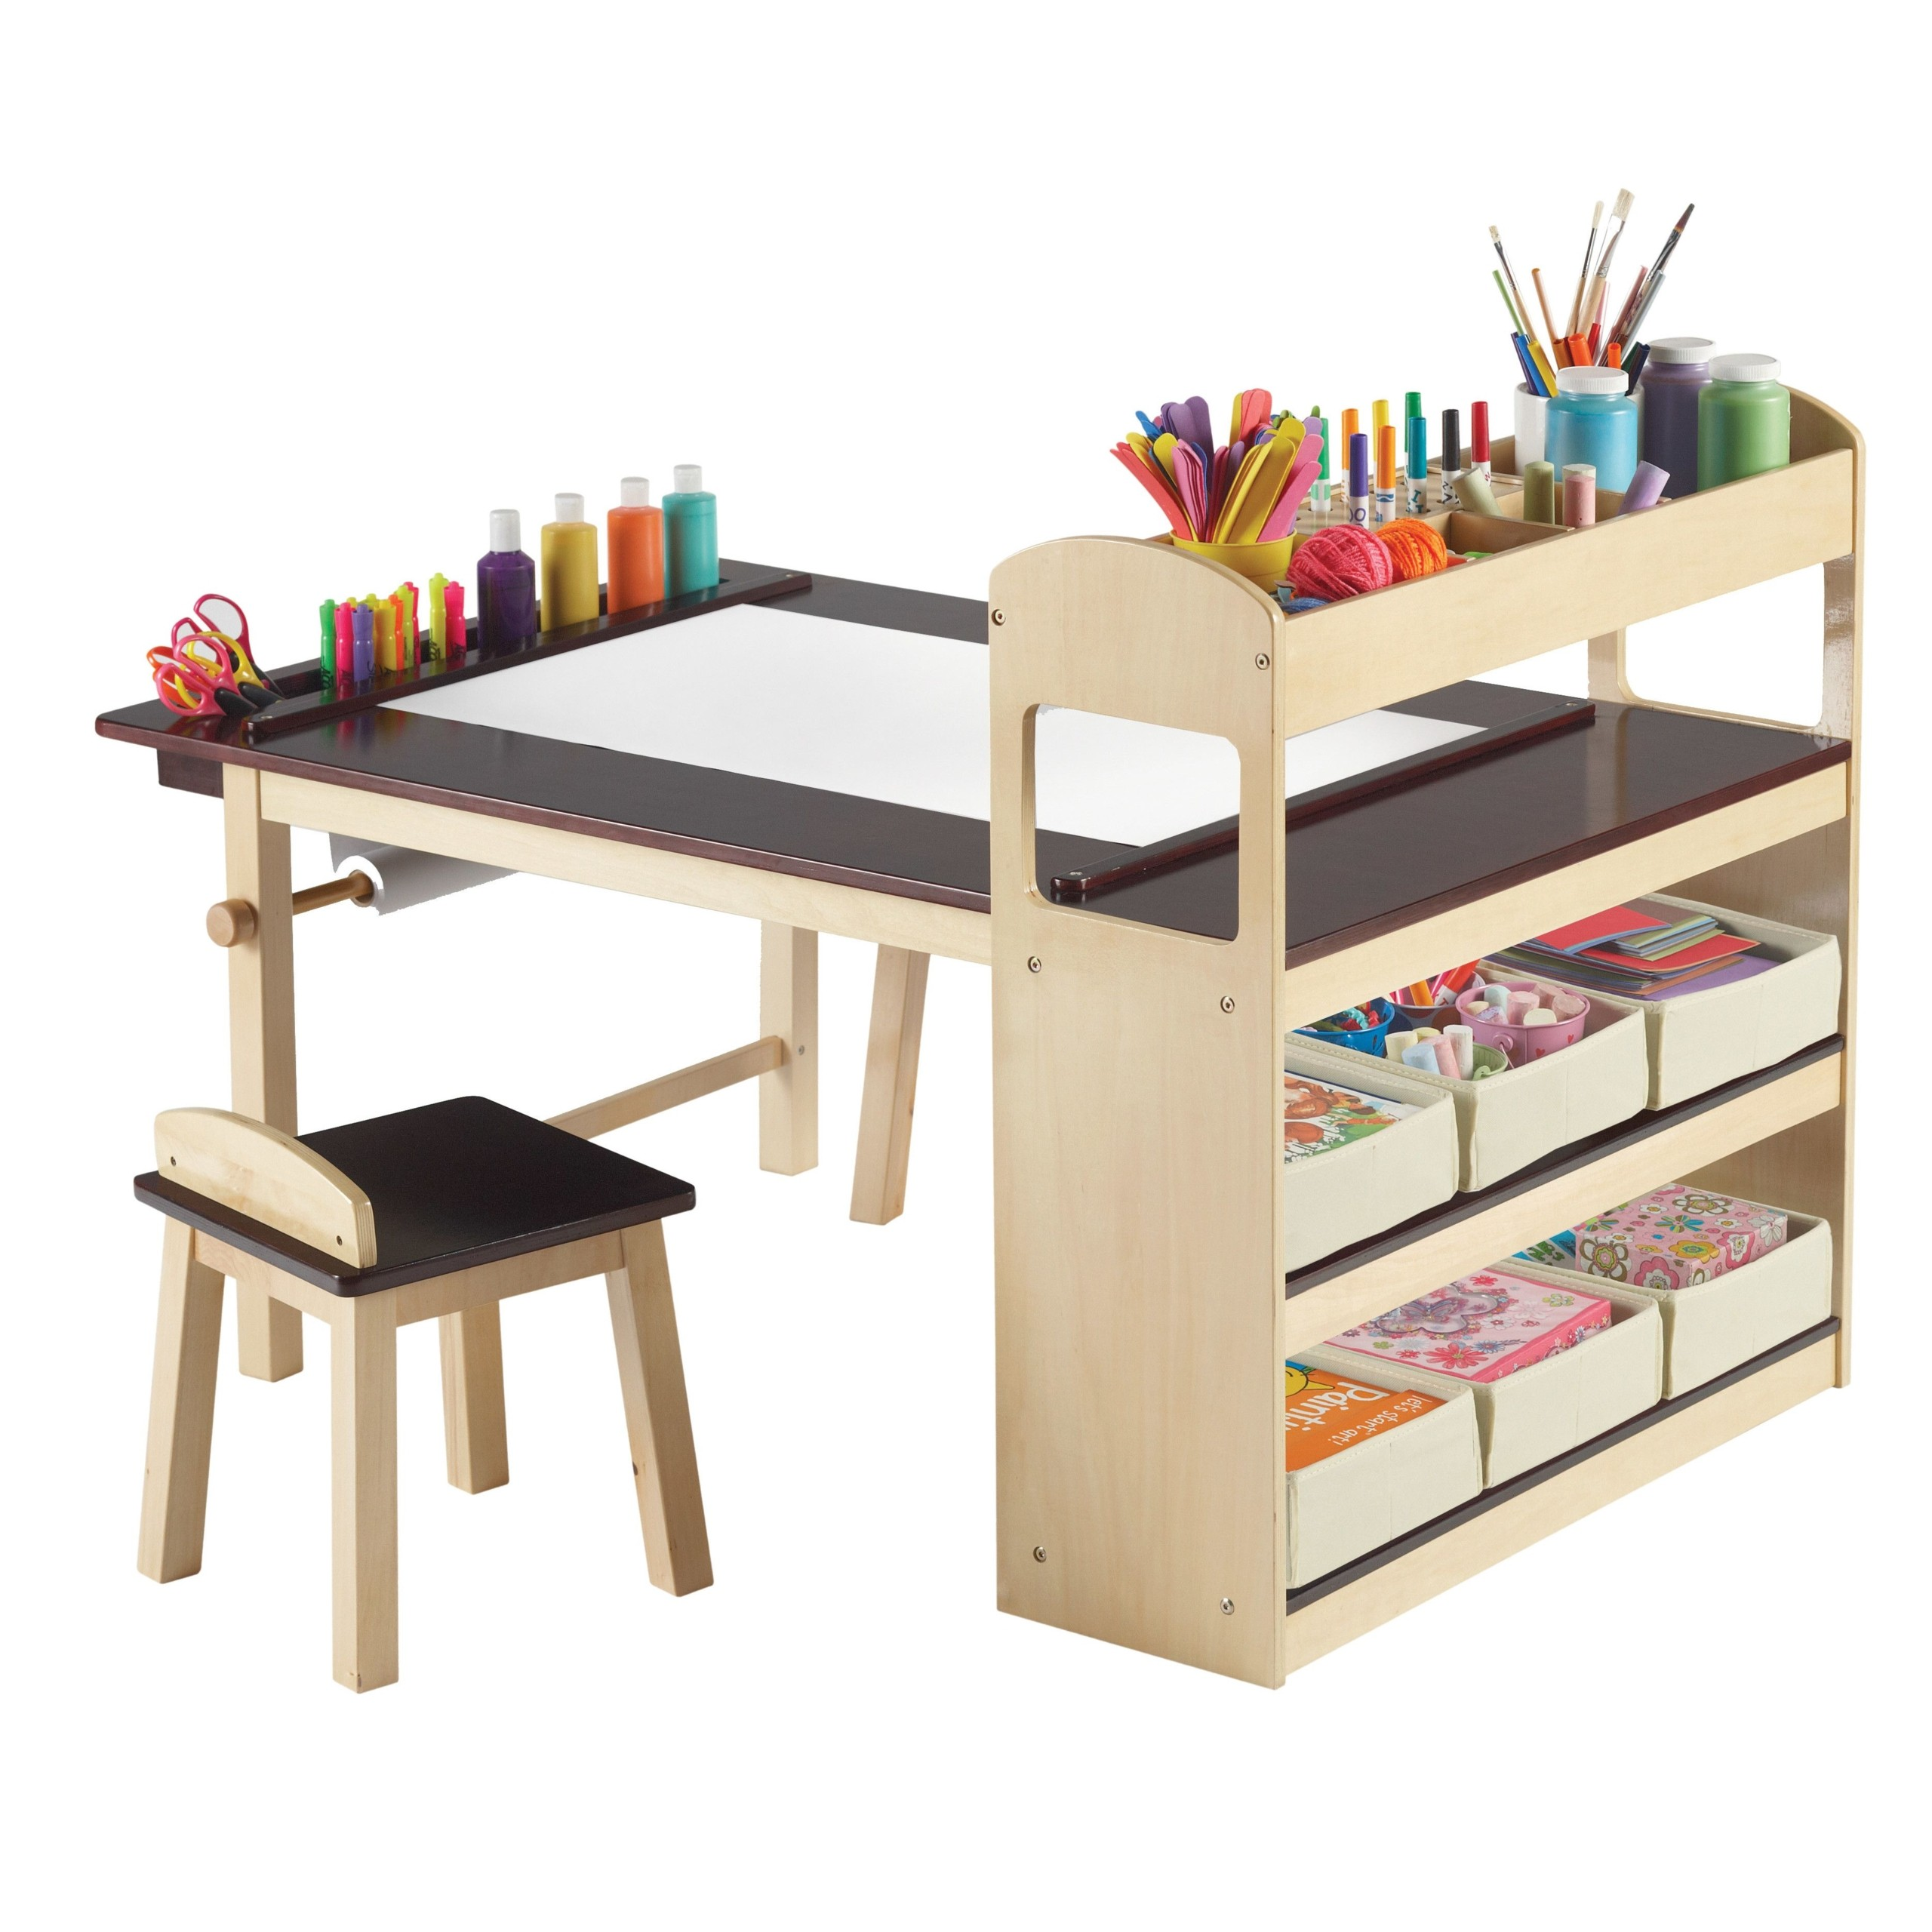 Delicieux Activity Tables For Kids With Storage